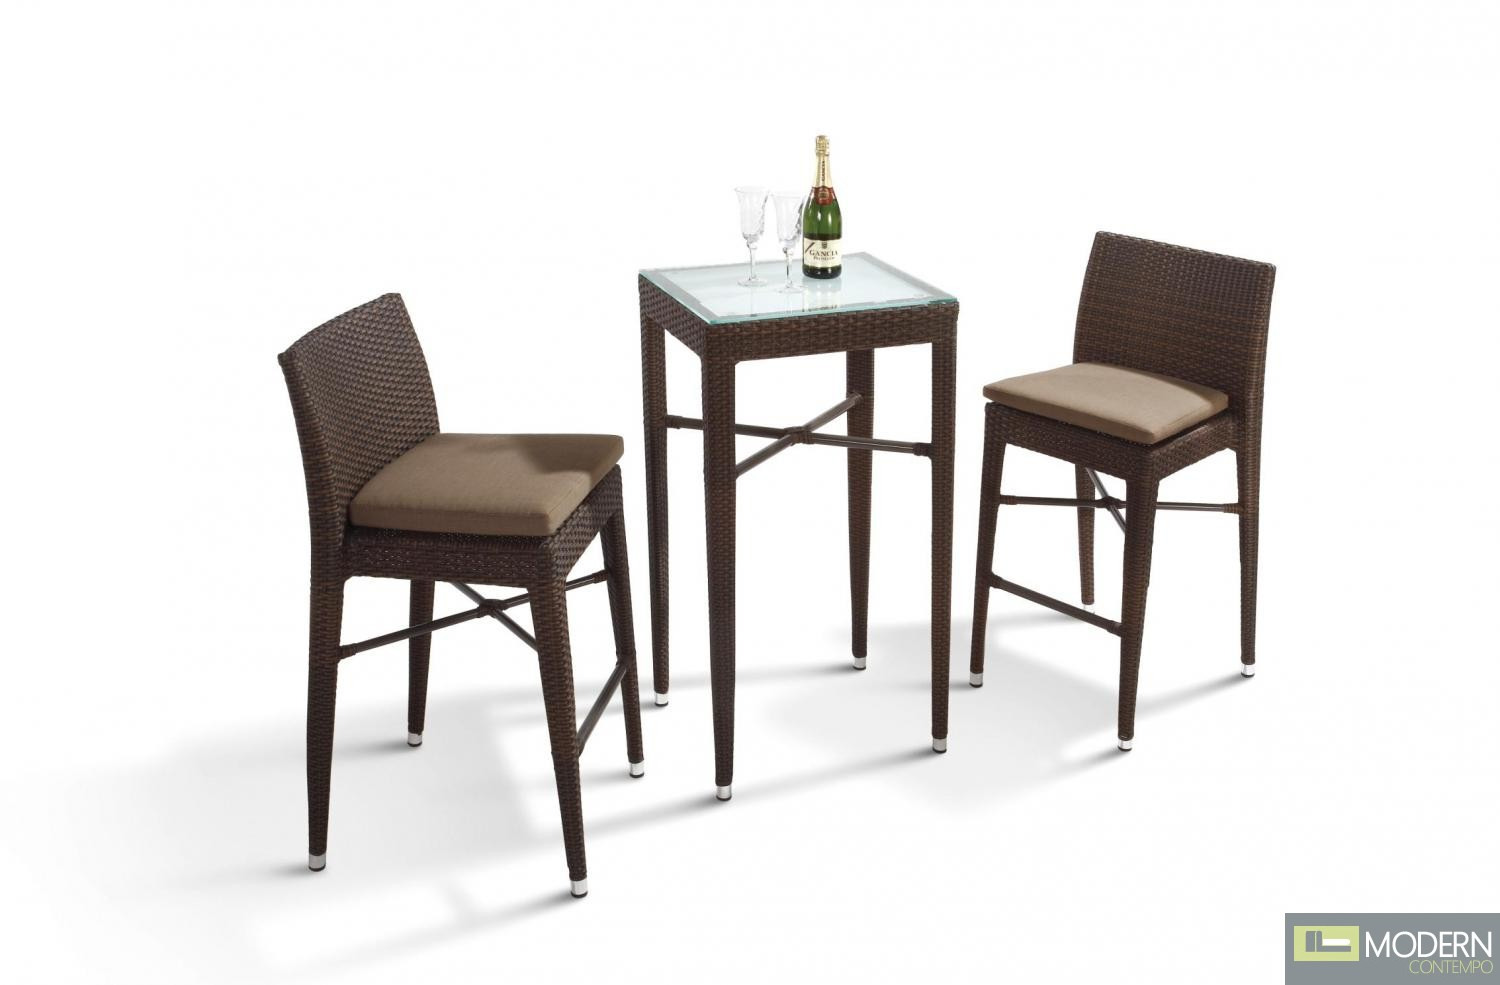 Renava HT25 Patio Bar Table and Chairs